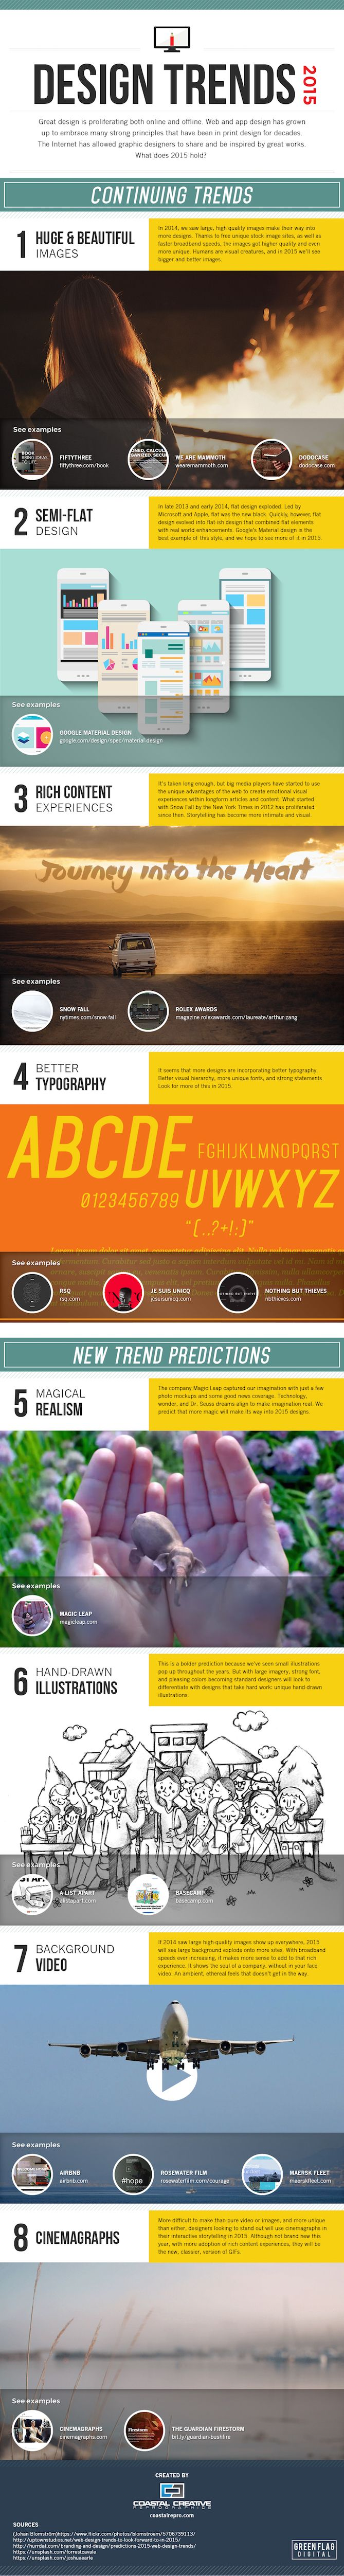 8 Design Trends to Watch in 2015 [Infographic] There are a few trends from last year that are continuing to go strong in 2015, like semi-flat design and more sophisticated typography. At the same time, a handful of noteworthy design trends -- like the image-video hybrid, called the cinemagraph -- are beginning to go mainstream.